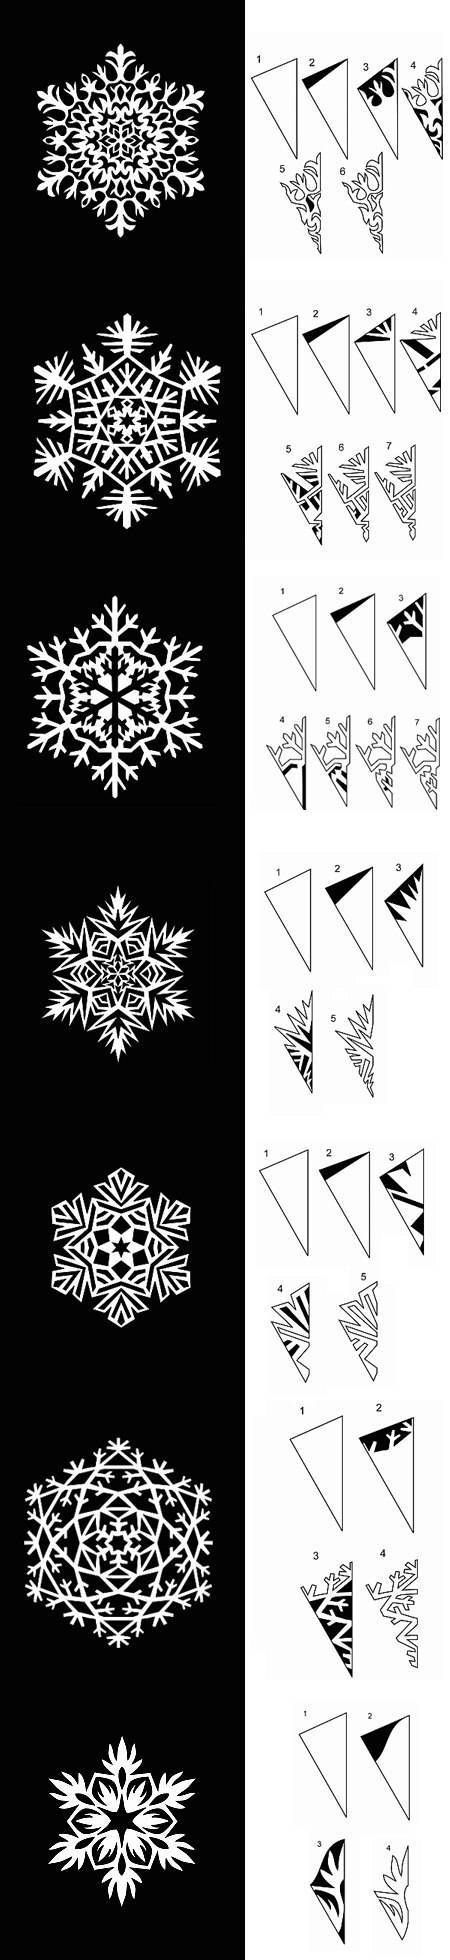 "<input type=""hidden"" value="""" data-frizzlyPostContainer="""" data-frizzlyPostUrl=""http://www.usefuldiy.com/diy-paper-snowflakes-templates/"" data-frizzlyPostTitle=""DIY Paper Snowflakes Templates"" data-frizzlyHoverContainer=""""><p>>>> Craft Tutorials More Free Instructions Free Tutorials More Craft Tutorials</p>"